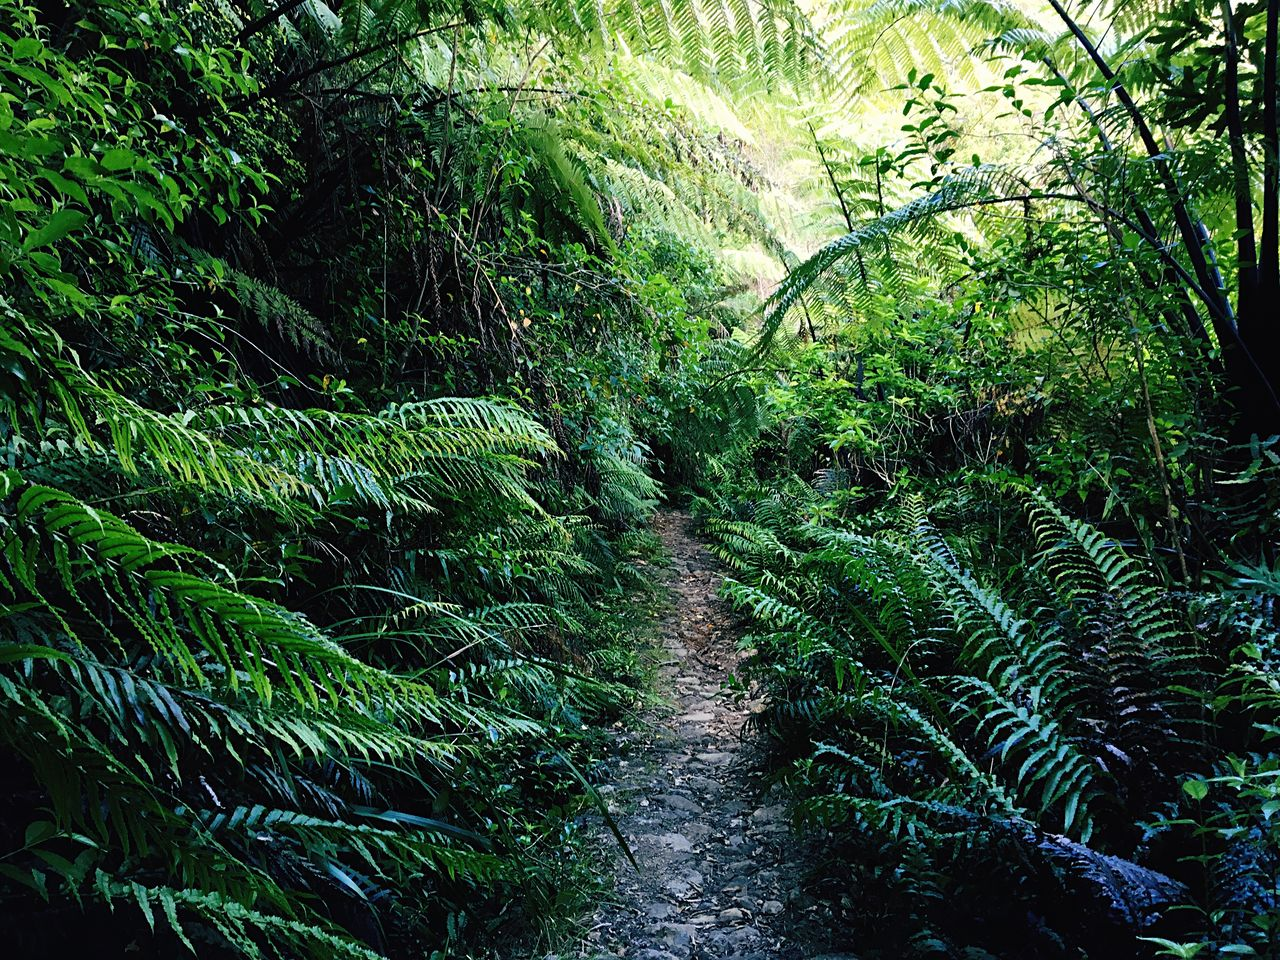 nature, beauty in nature, green color, growth, lush foliage, outdoors, tree, scenics, no people, tranquility, tranquil scene, day, lush - description, plant, forest, water, fern, landscape